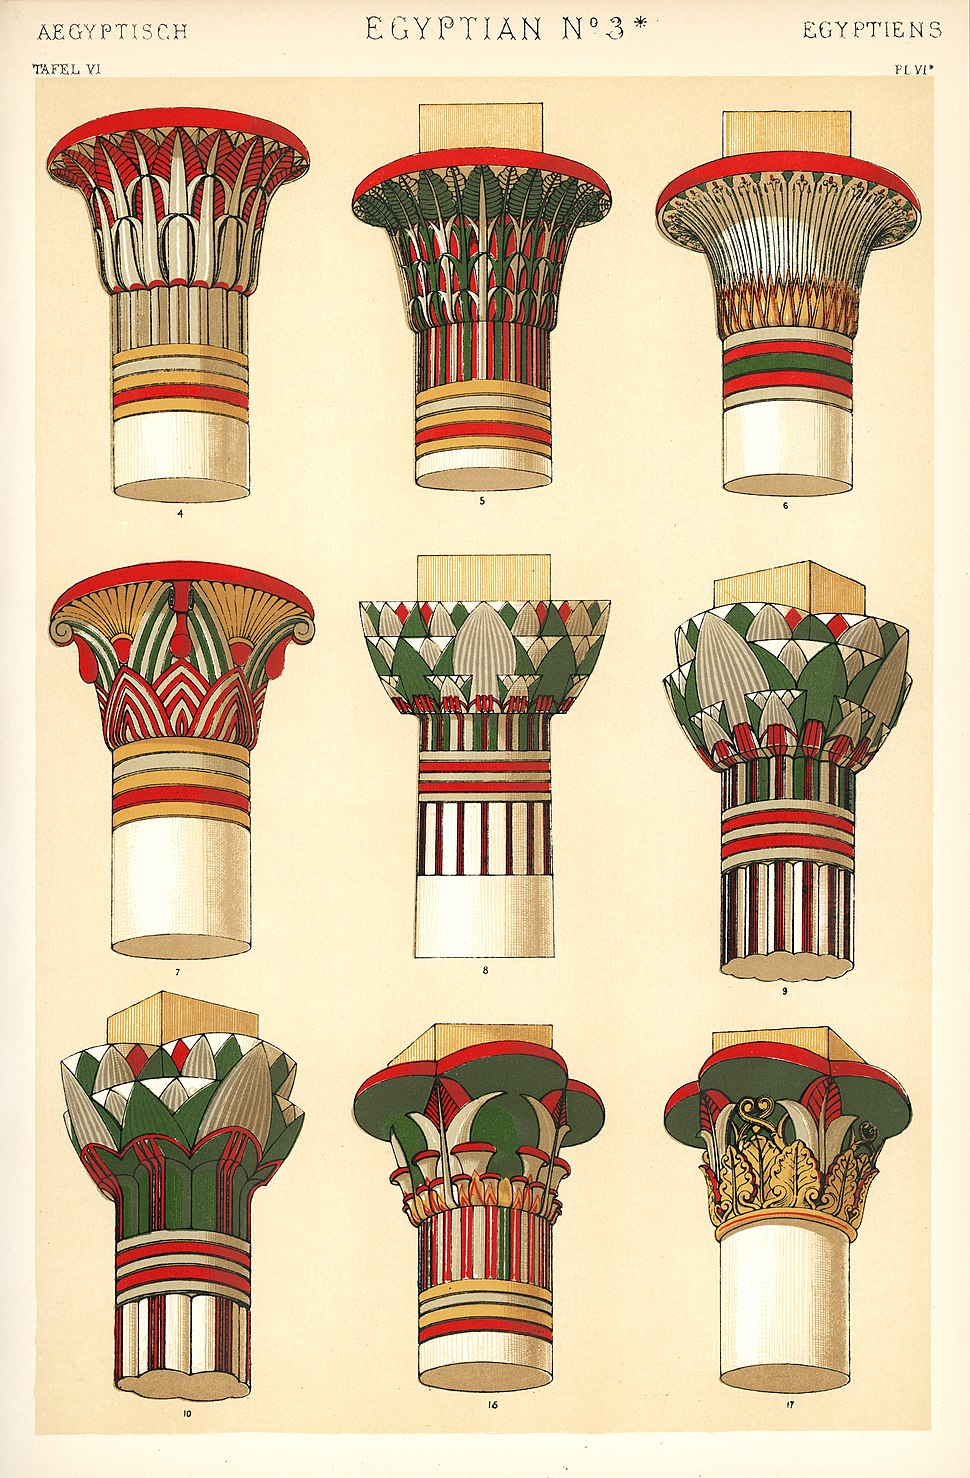 Vintage illustration from the grammar of ornament7